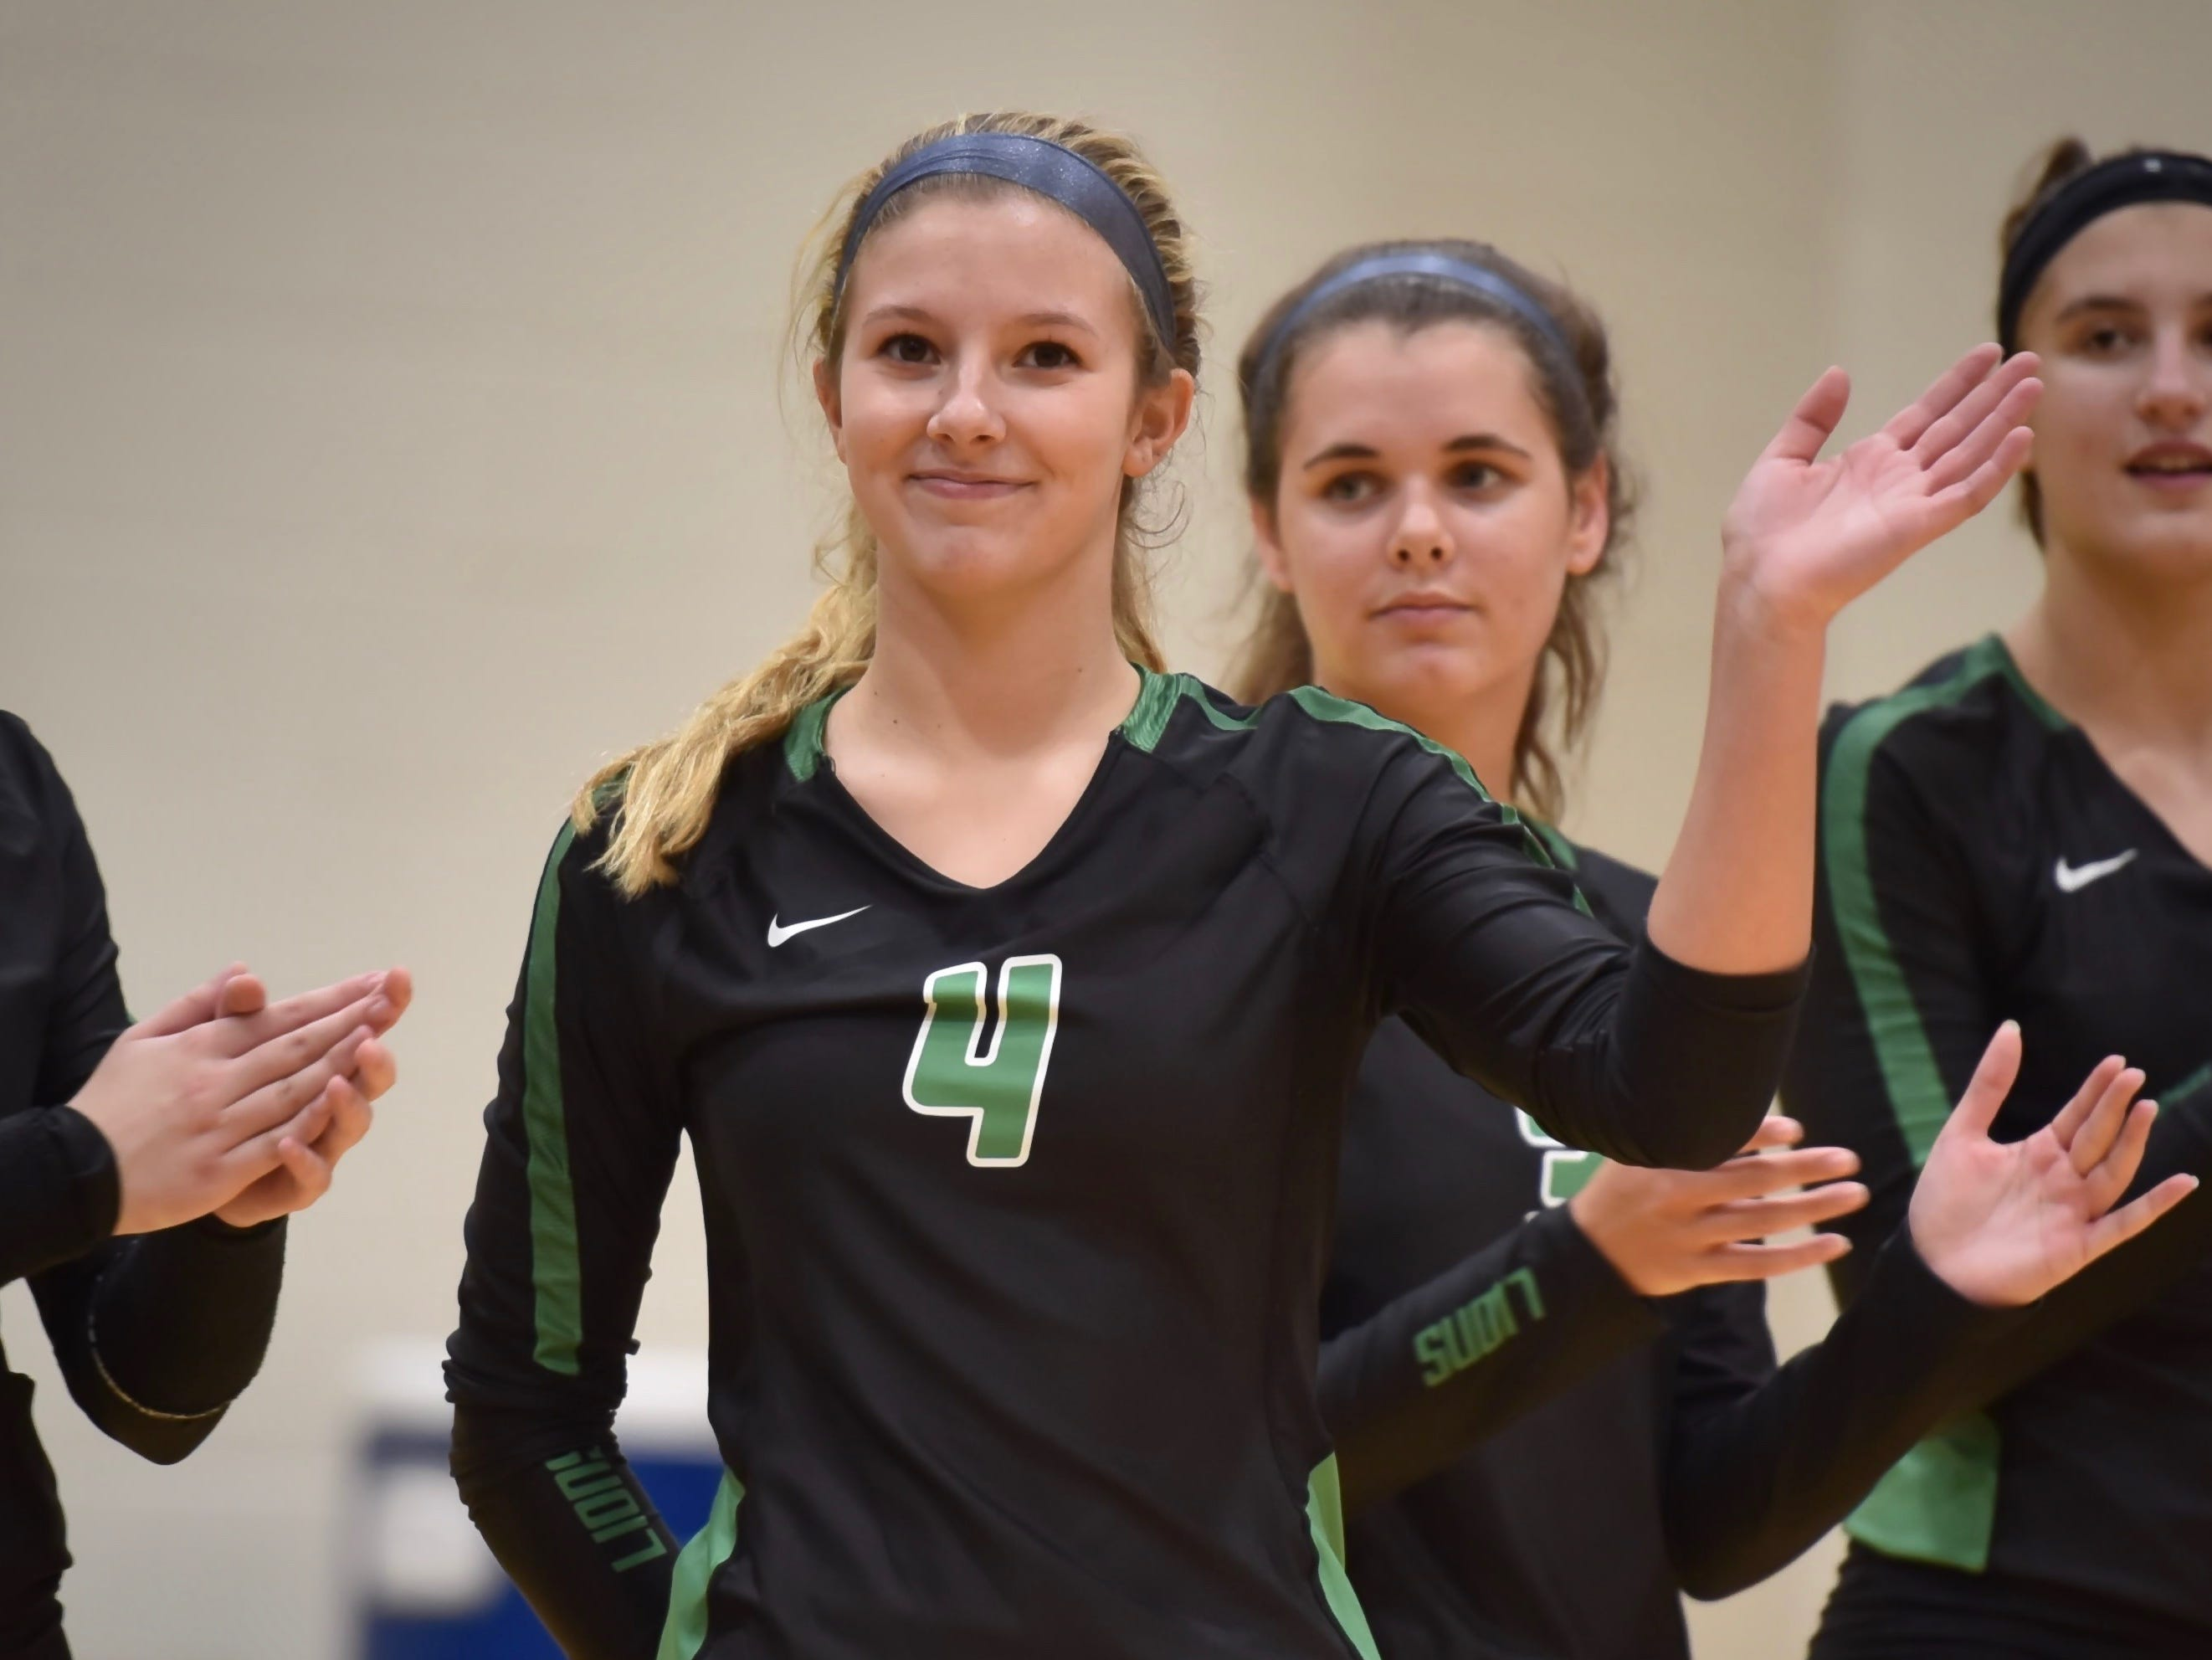 Ursuline's Sydney McCarthy is introduced to the floor Tuesday, Sept. 11, 2018 at Ursuline Academy